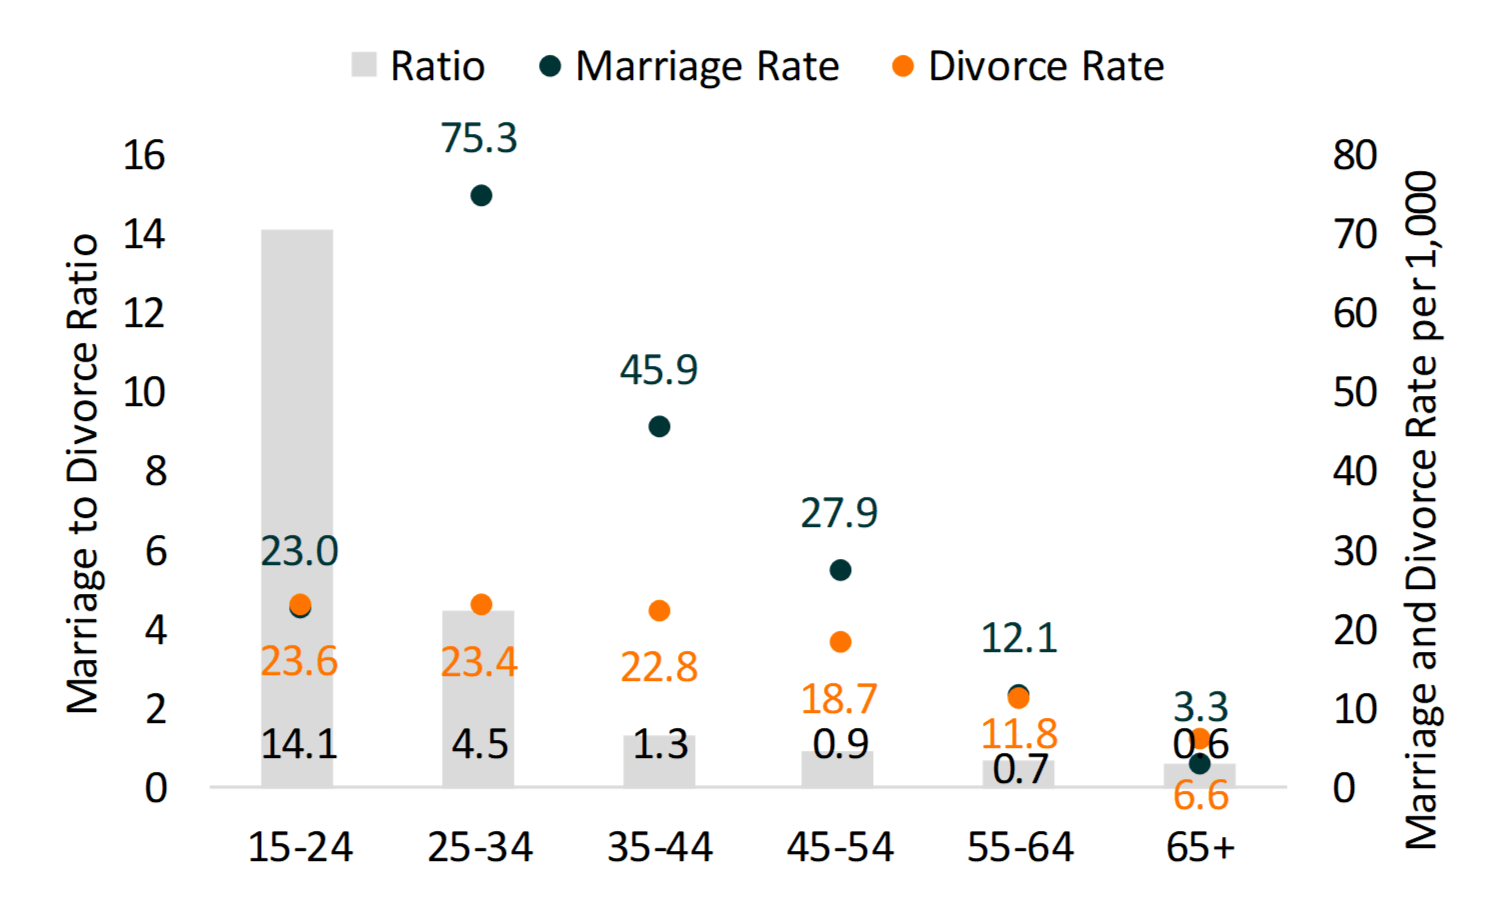 Bar chart showing Women's Marriage to Divorce Ratio and Marriage and Divorce Rate by Age Group, 2018